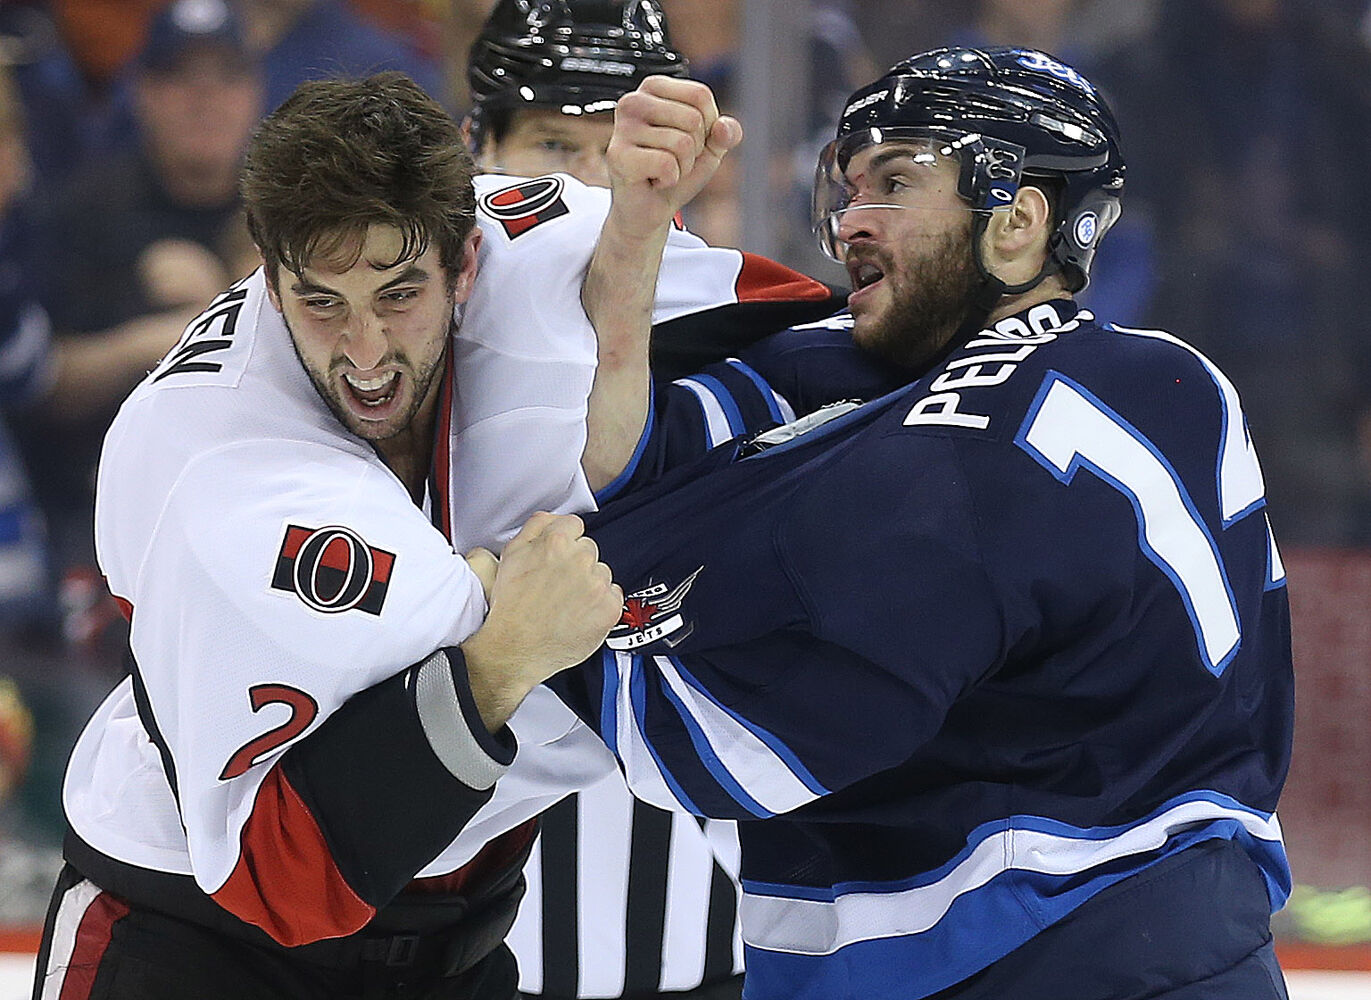 Ottawa Senators' Jared Cowen (2) fights Winnipeg Jets' Anthony Peluso (14) during the second period.